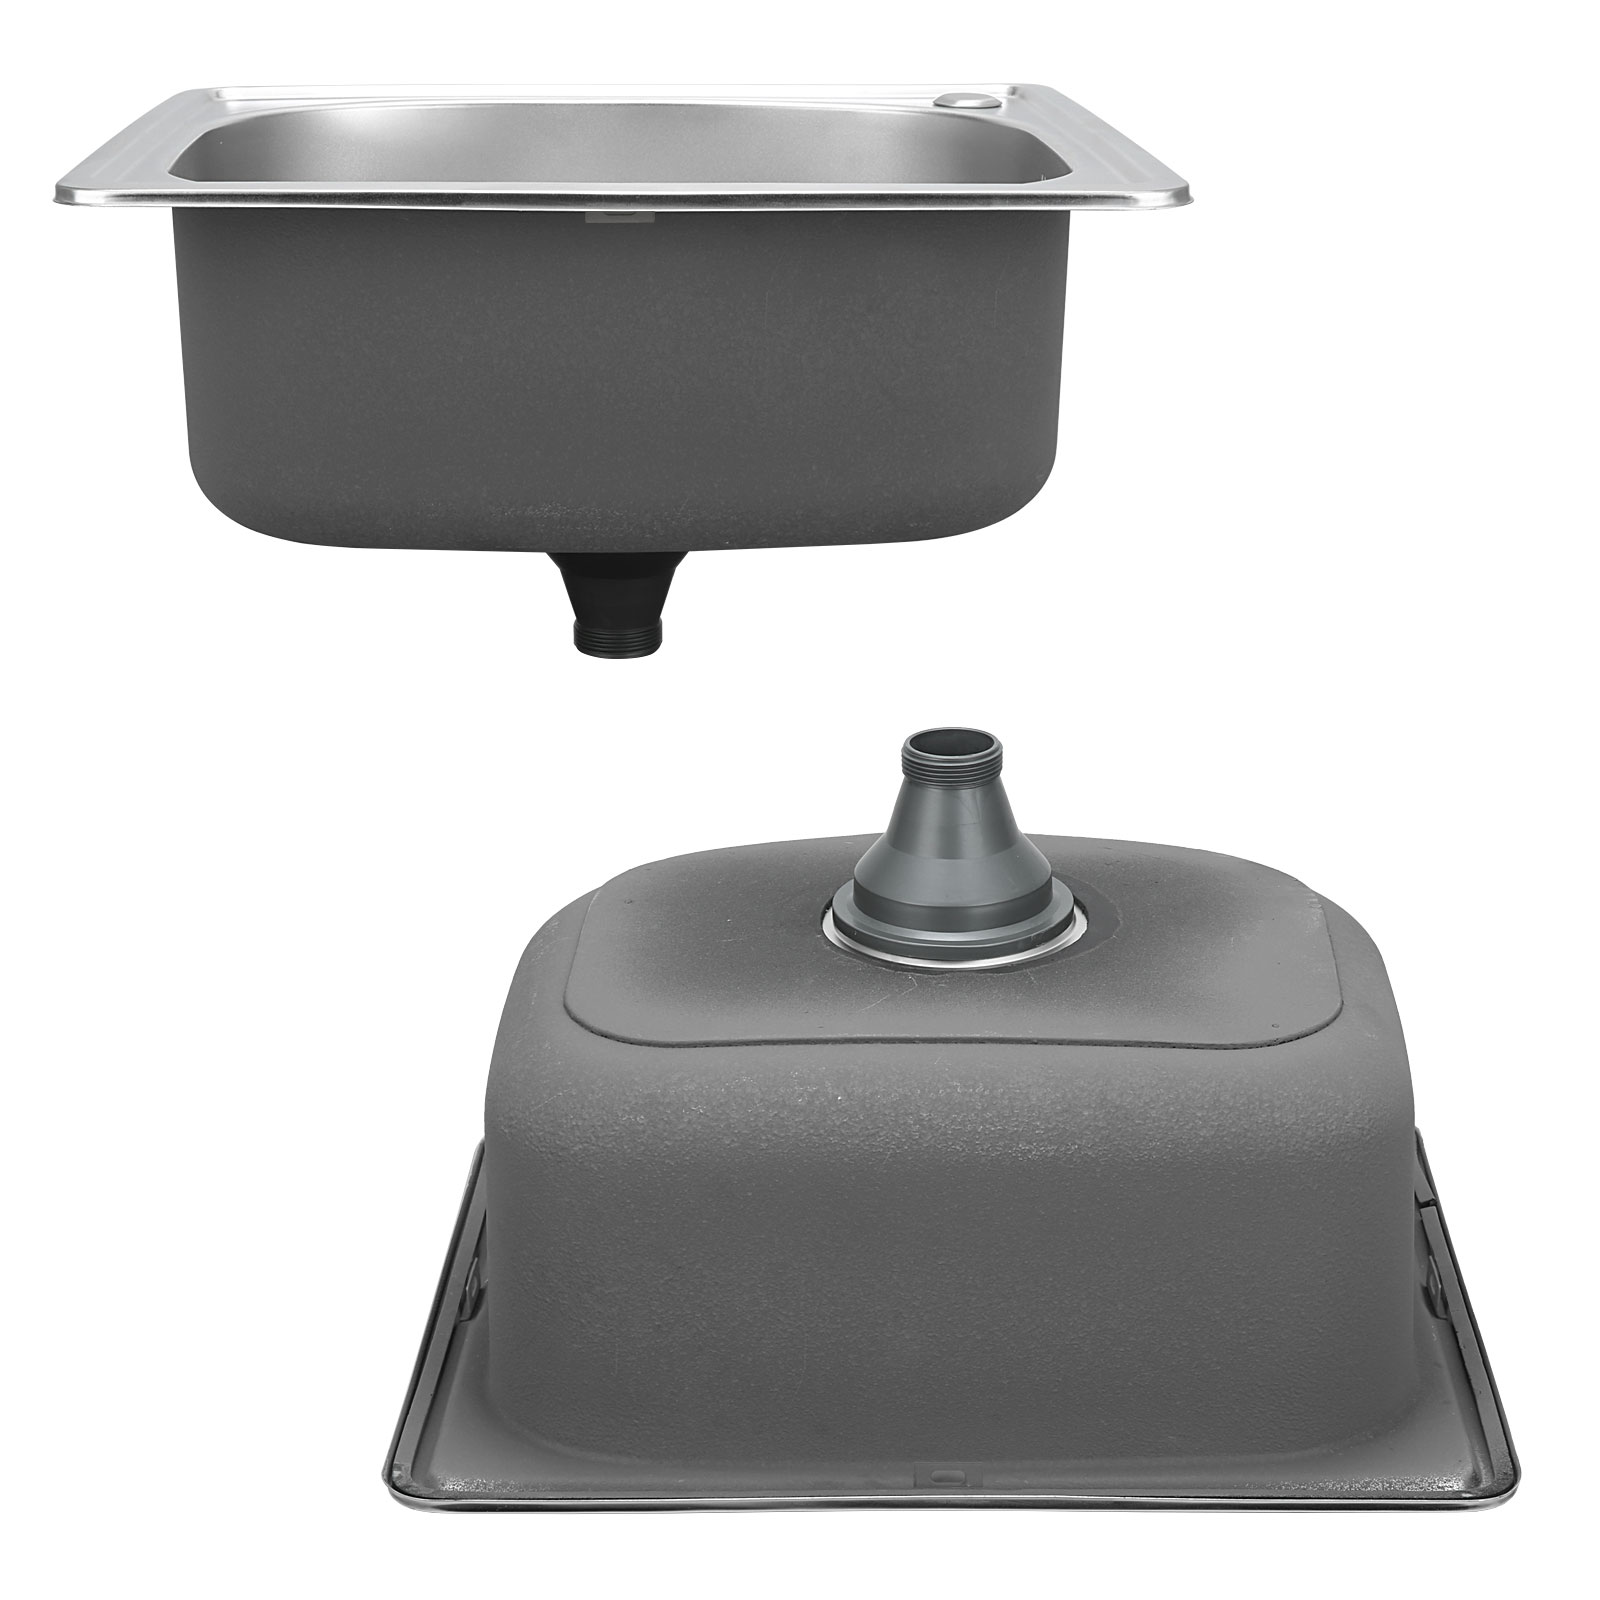 Single Square Bowl Laundry Stainless Steel Kitchen Sink